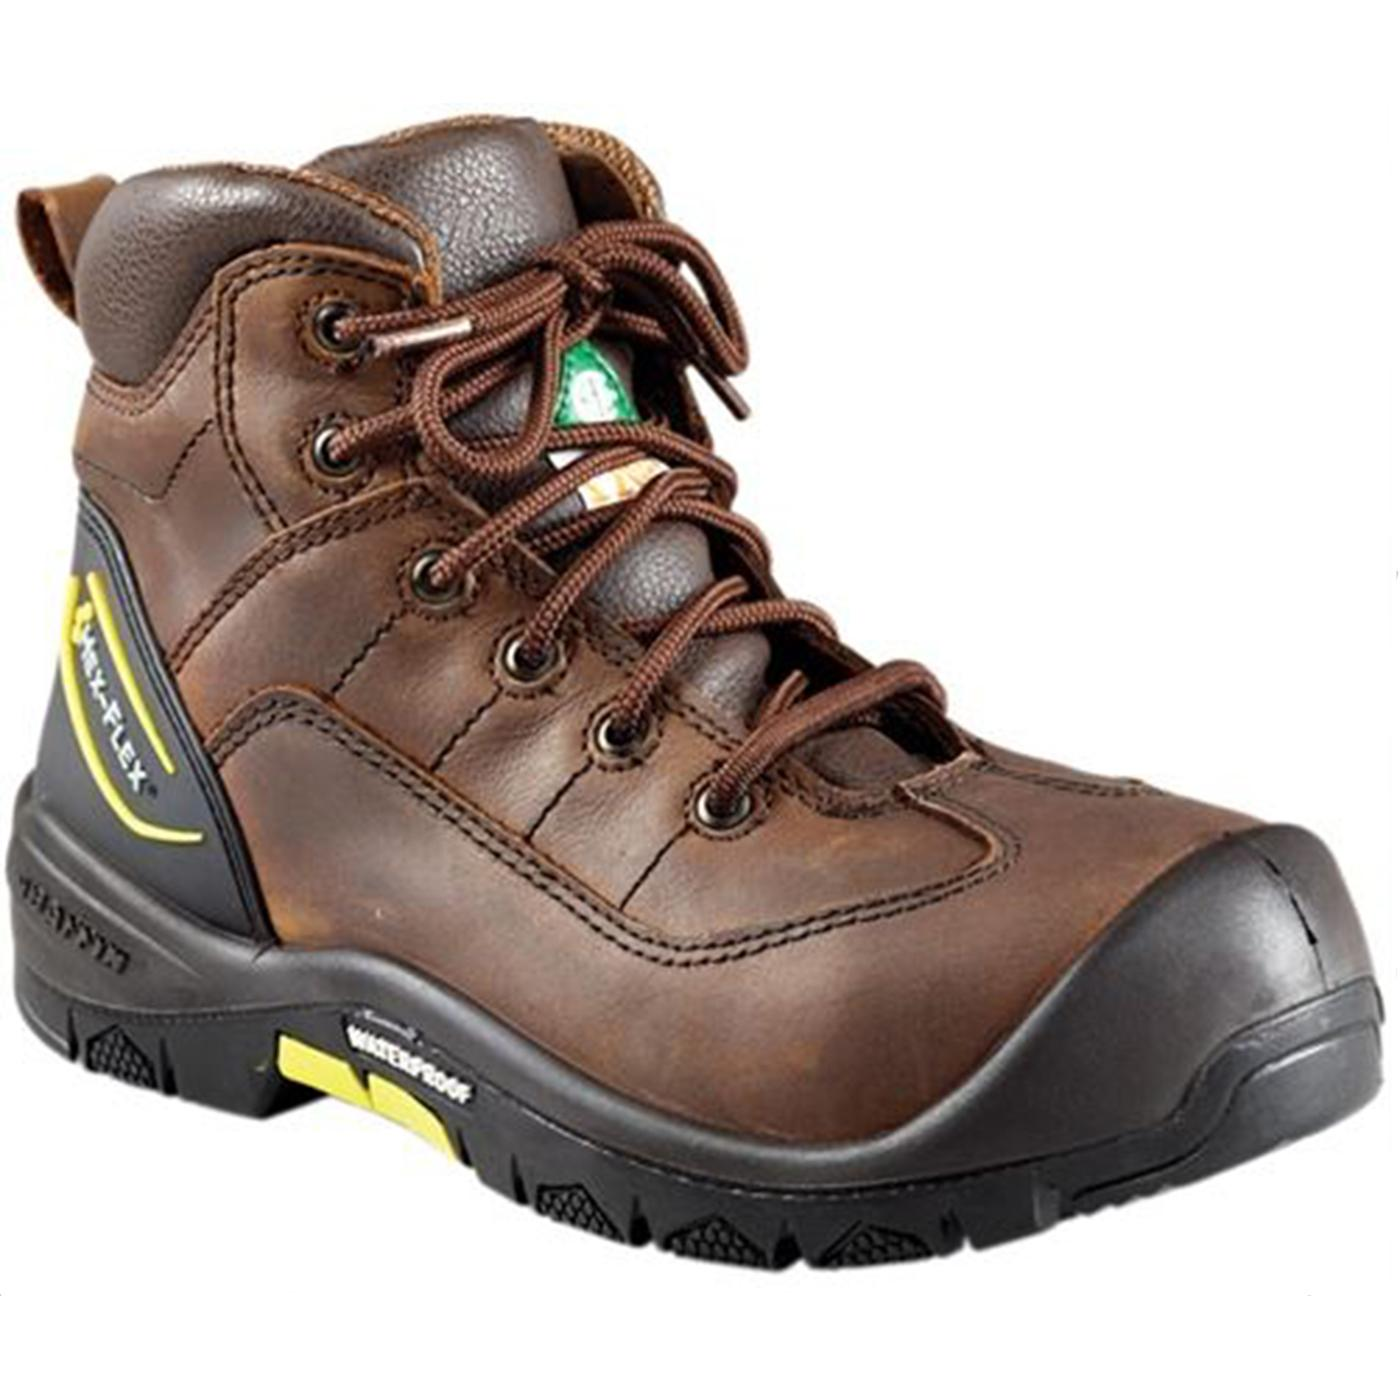 e2b3f73387c Baffin Chaos Aluminum Toe CSA-Approved Puncture-Resistant Waterproof Work  Hiker